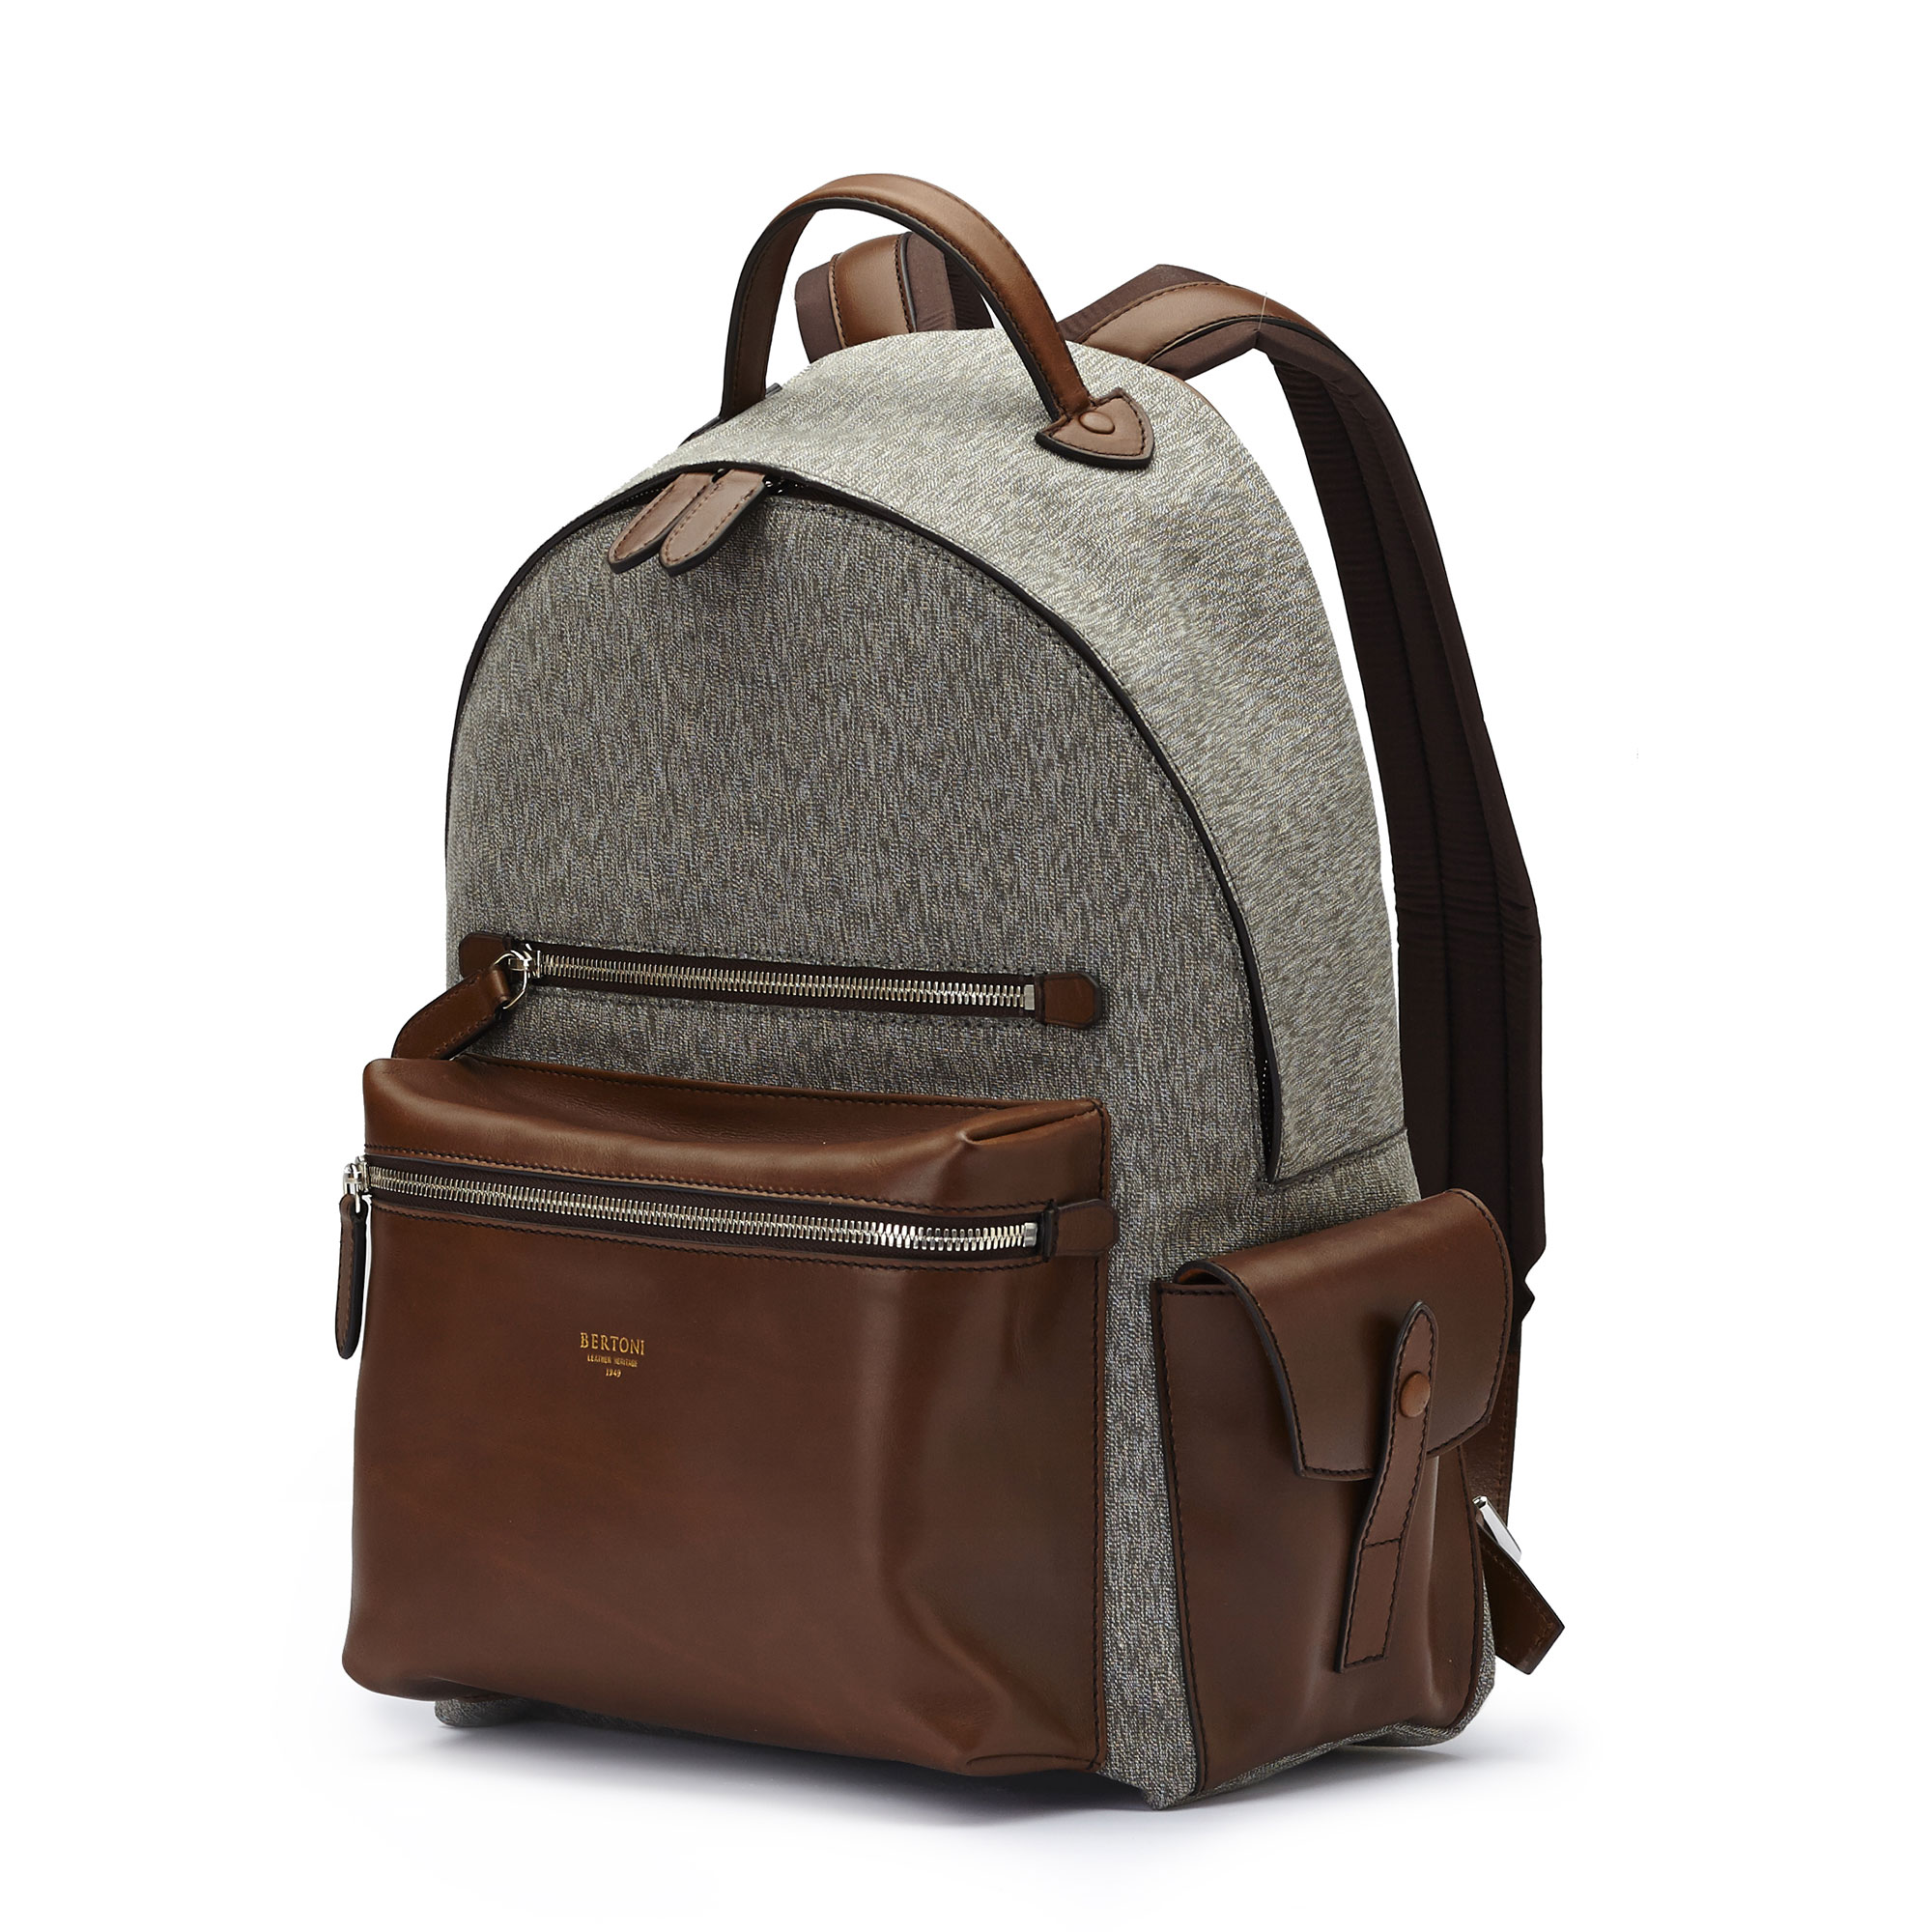 The olive and ivory french calf Zip Backpack by Bertoni 1949 02